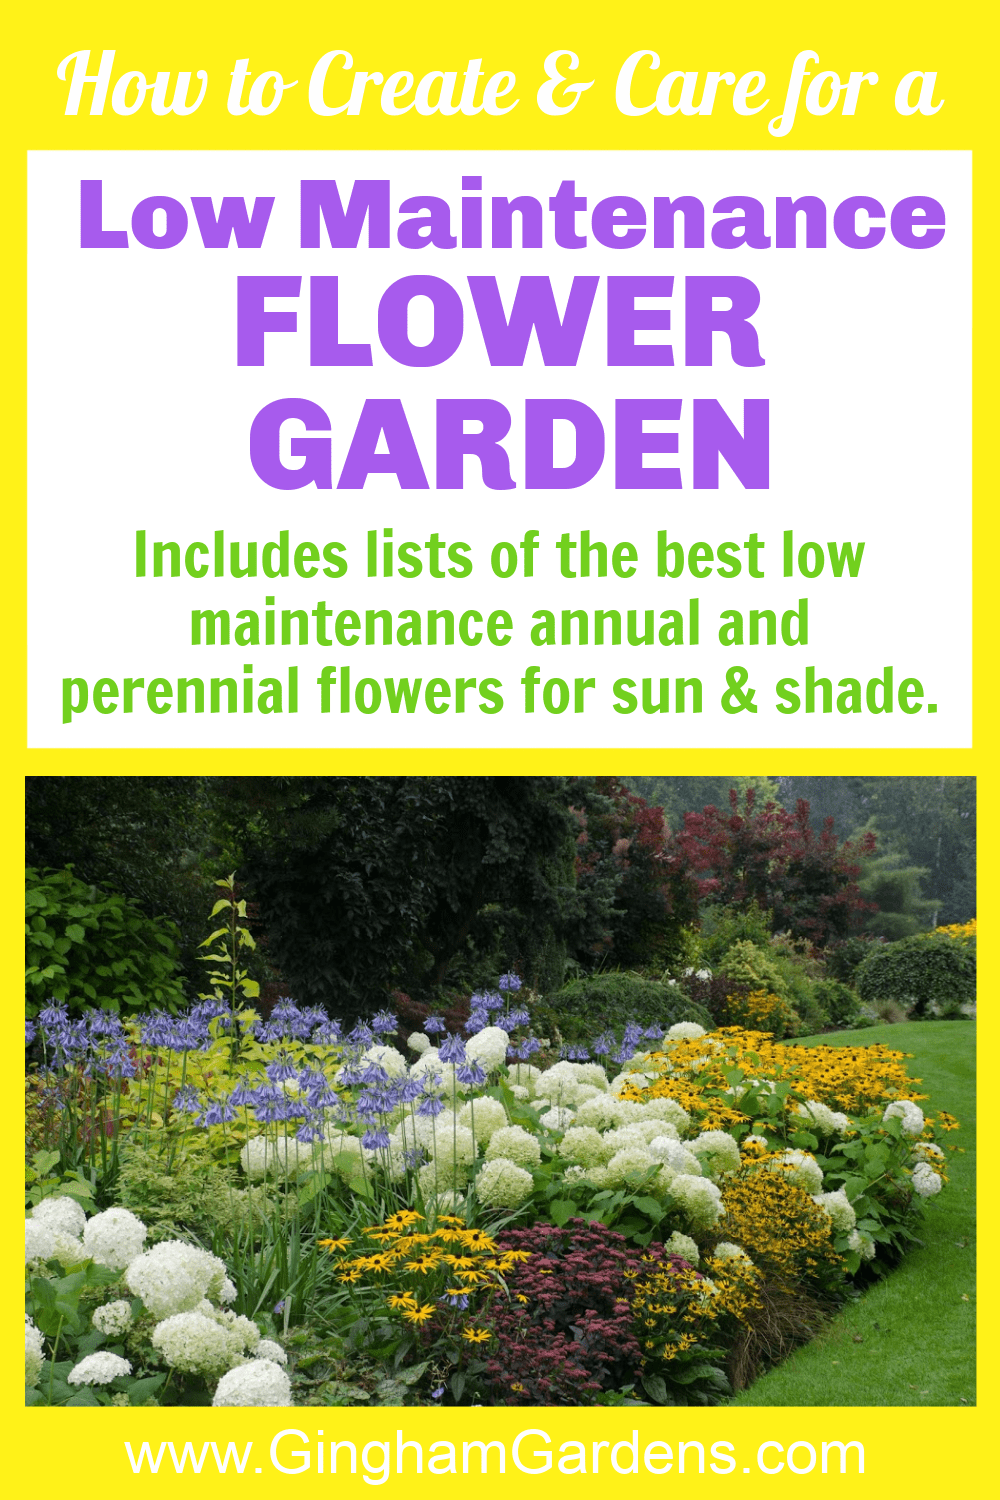 Image of a Flower Garden with text overlay - How to Create and Care for a Low Maintenance Flower Garden